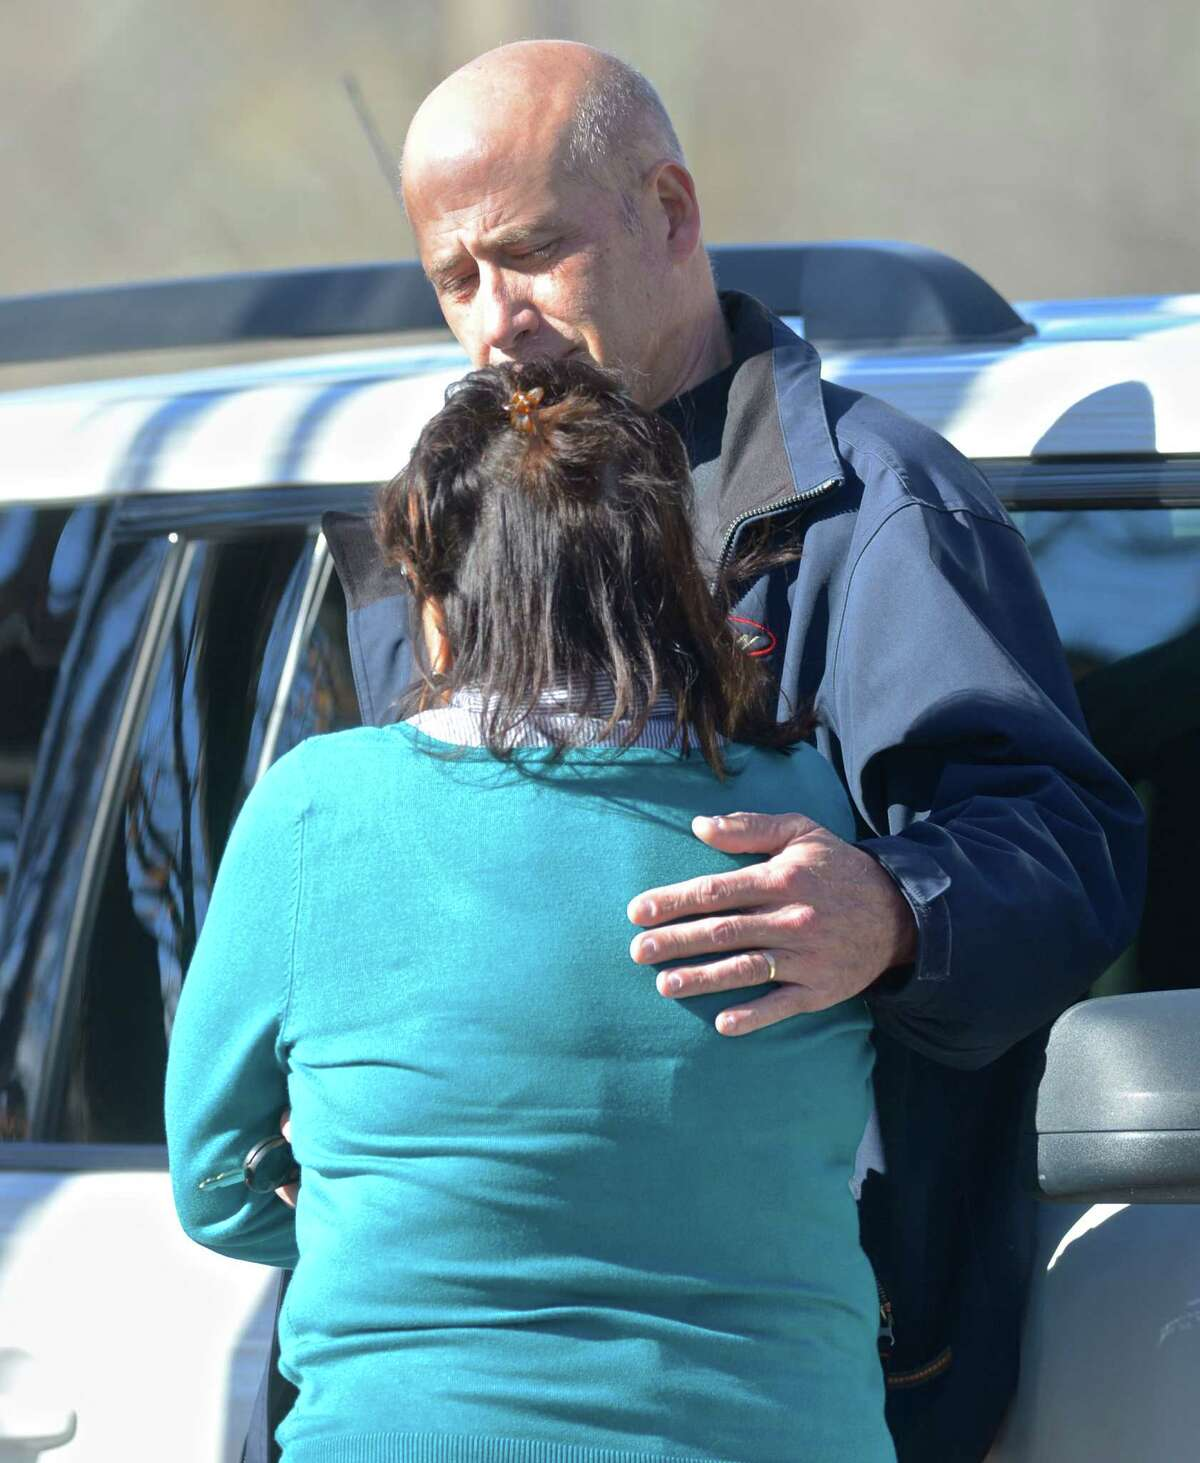 Eric Horsa, of Ridgefield, comforts his wife, Portia, as authorities on Friday search the Titicus Reservoir in North Salem, N.Y., for a small plane that went missing during its approach to Danbury Airport. Horsa said he believes his father, Val Horsa, and his stepmother, Taew Robinson, were on the small plane.